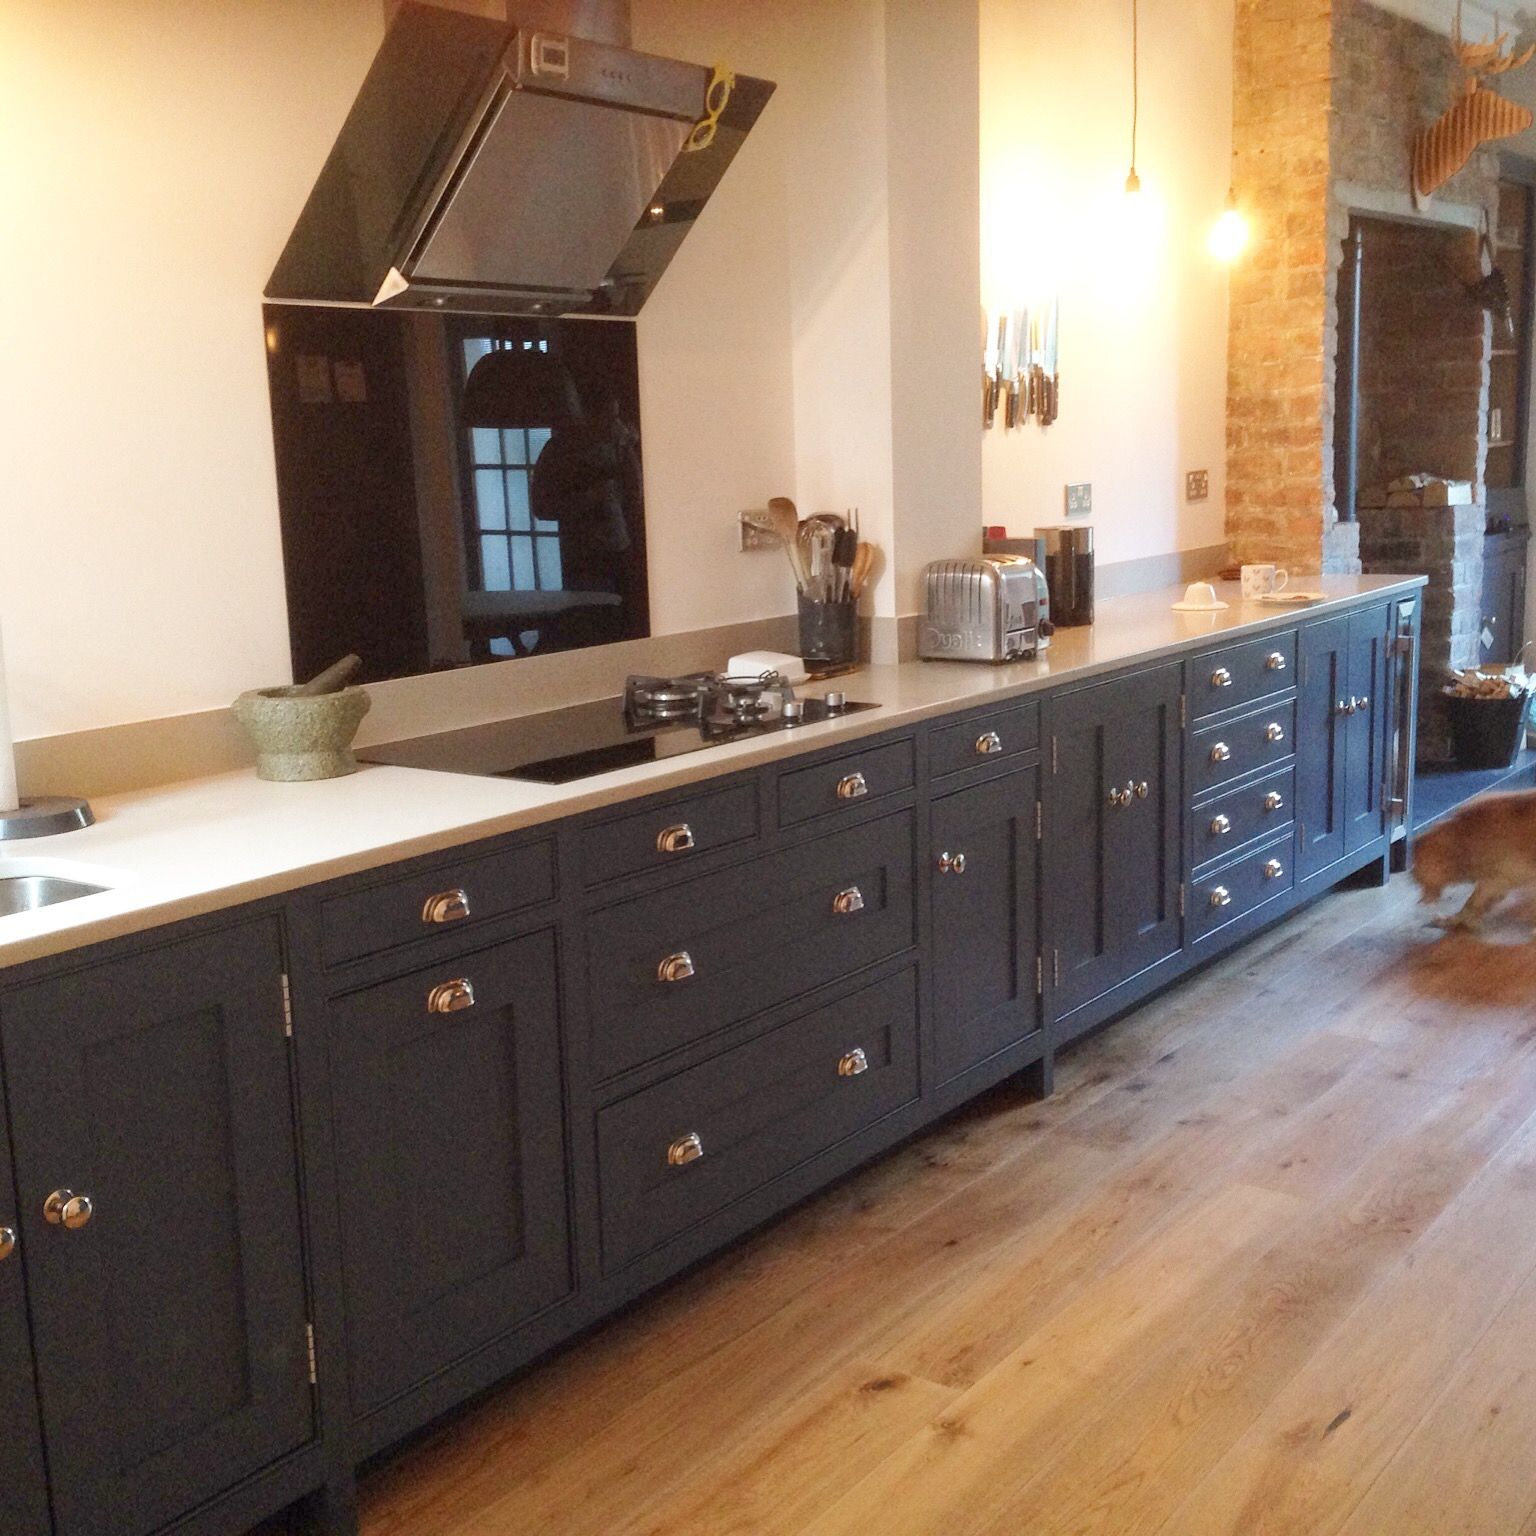 Made and designed by Dunham Fitted Furniture,this kitchen ...